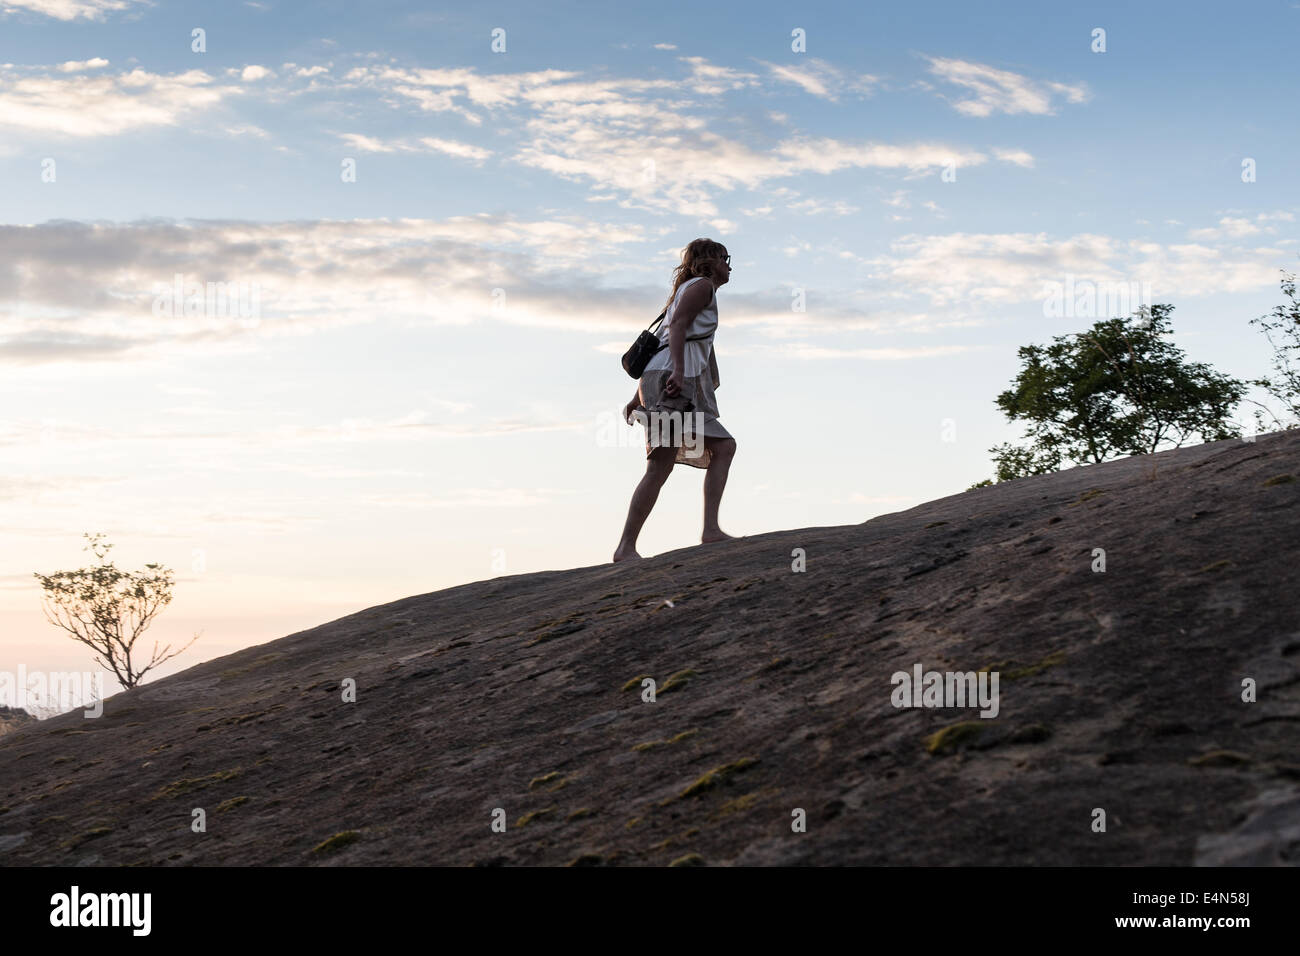 woman wearing dress walking up hill holding shoes in hands as the sun goes down - Stock Image